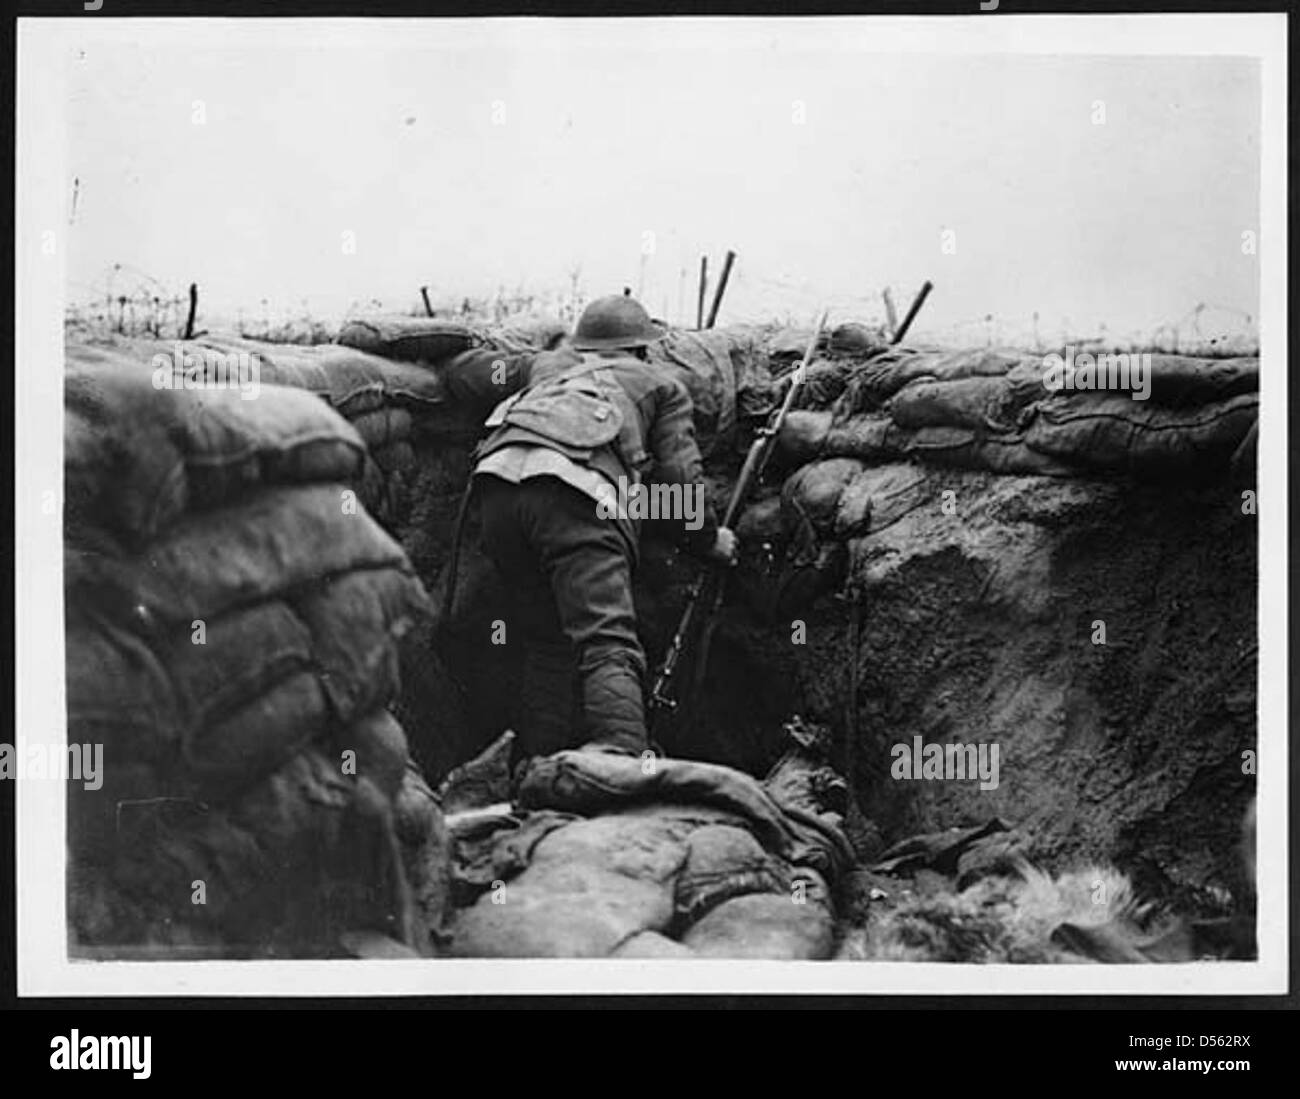 No Mans Land Black and White Stock Photos & Images - Alamy